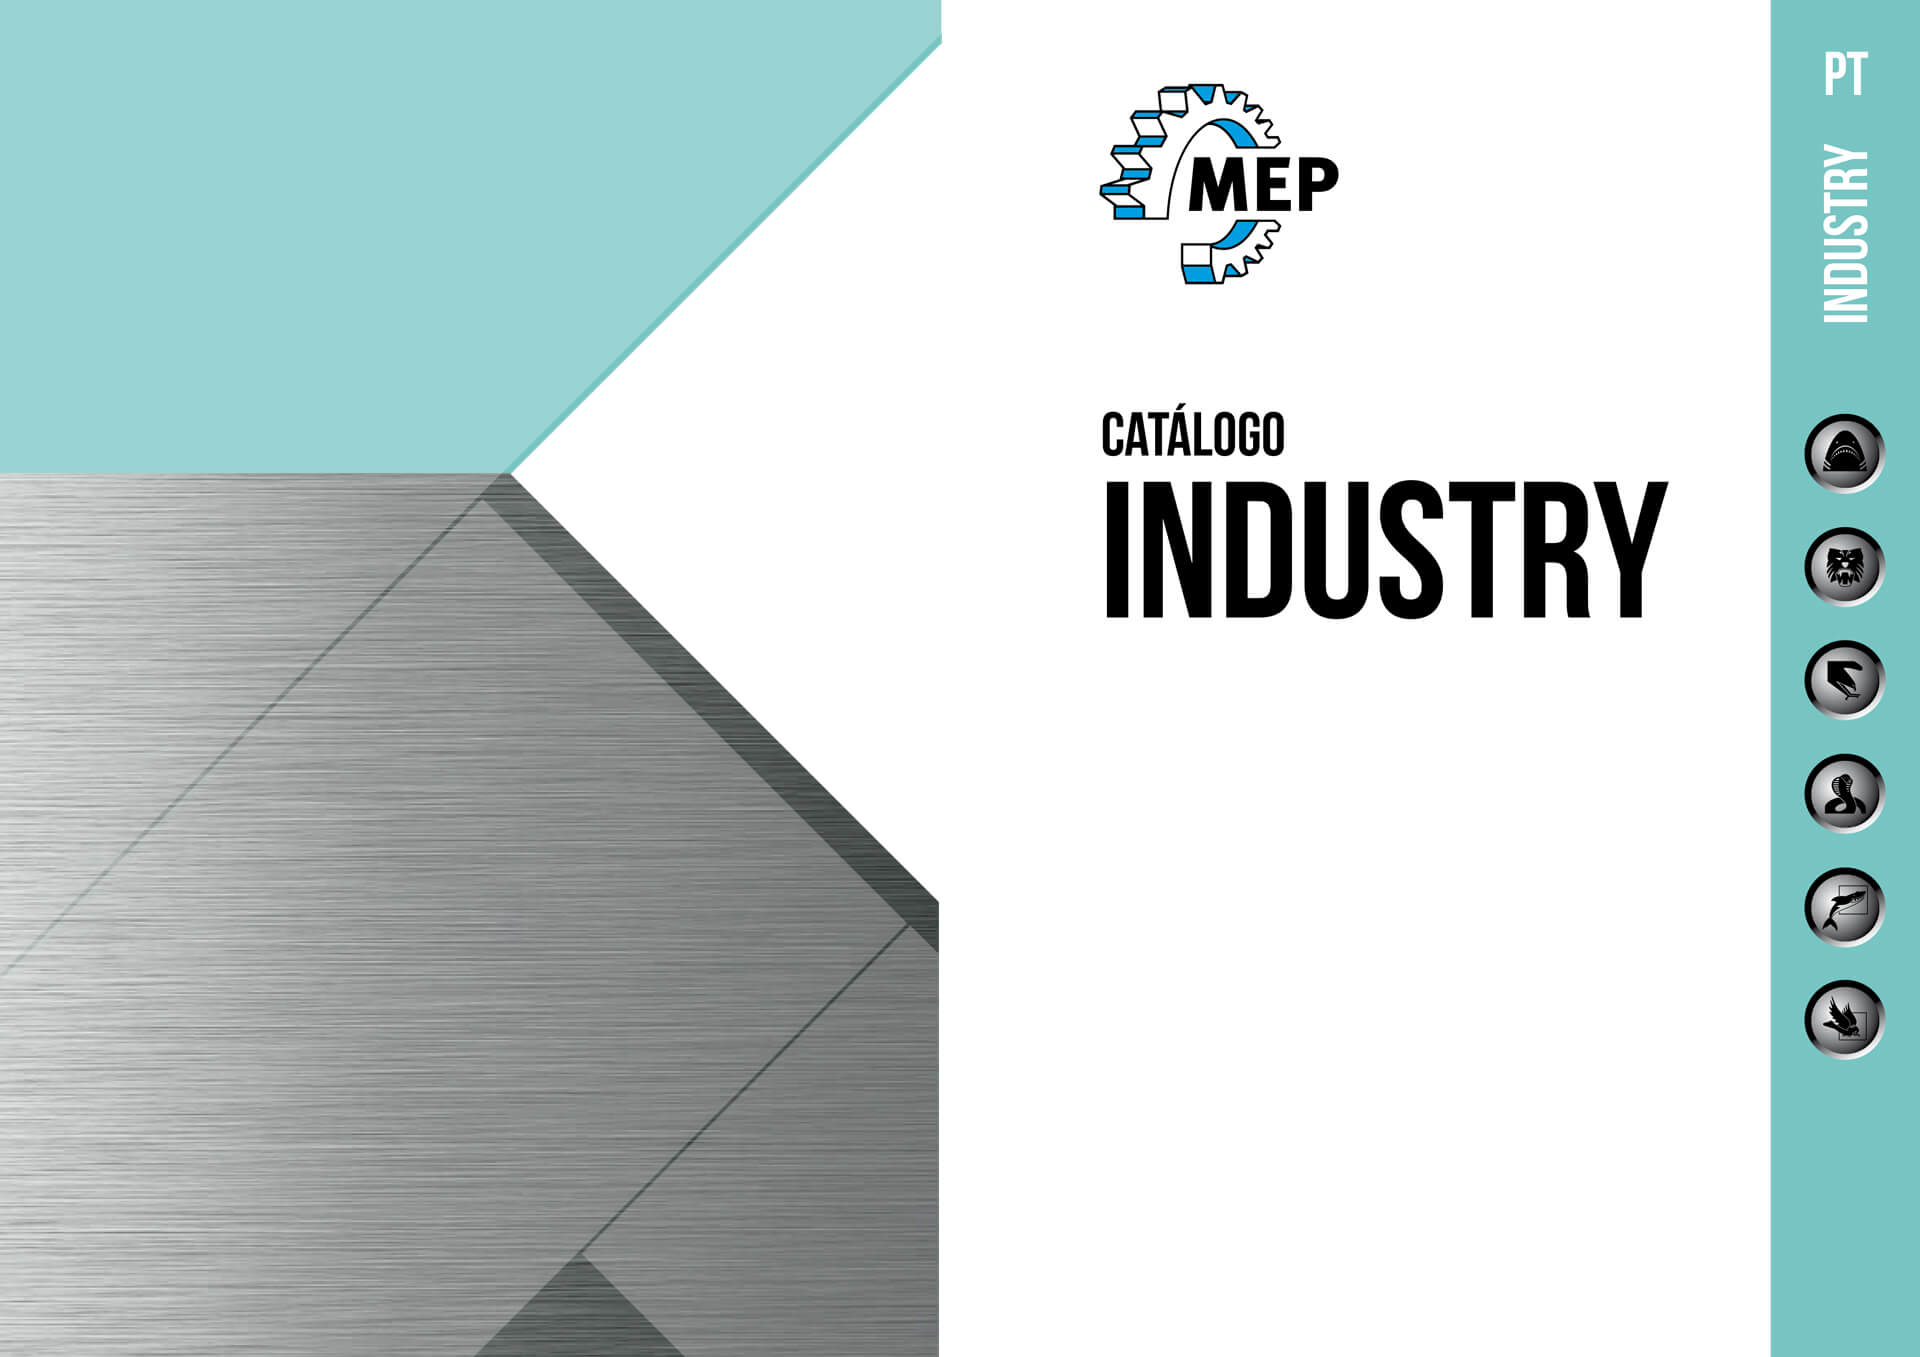 Catalogues INDUSTRY of Mep Sawing machines for metals | © MEP S.p.A. - Circular and band sawing machines to cut metals